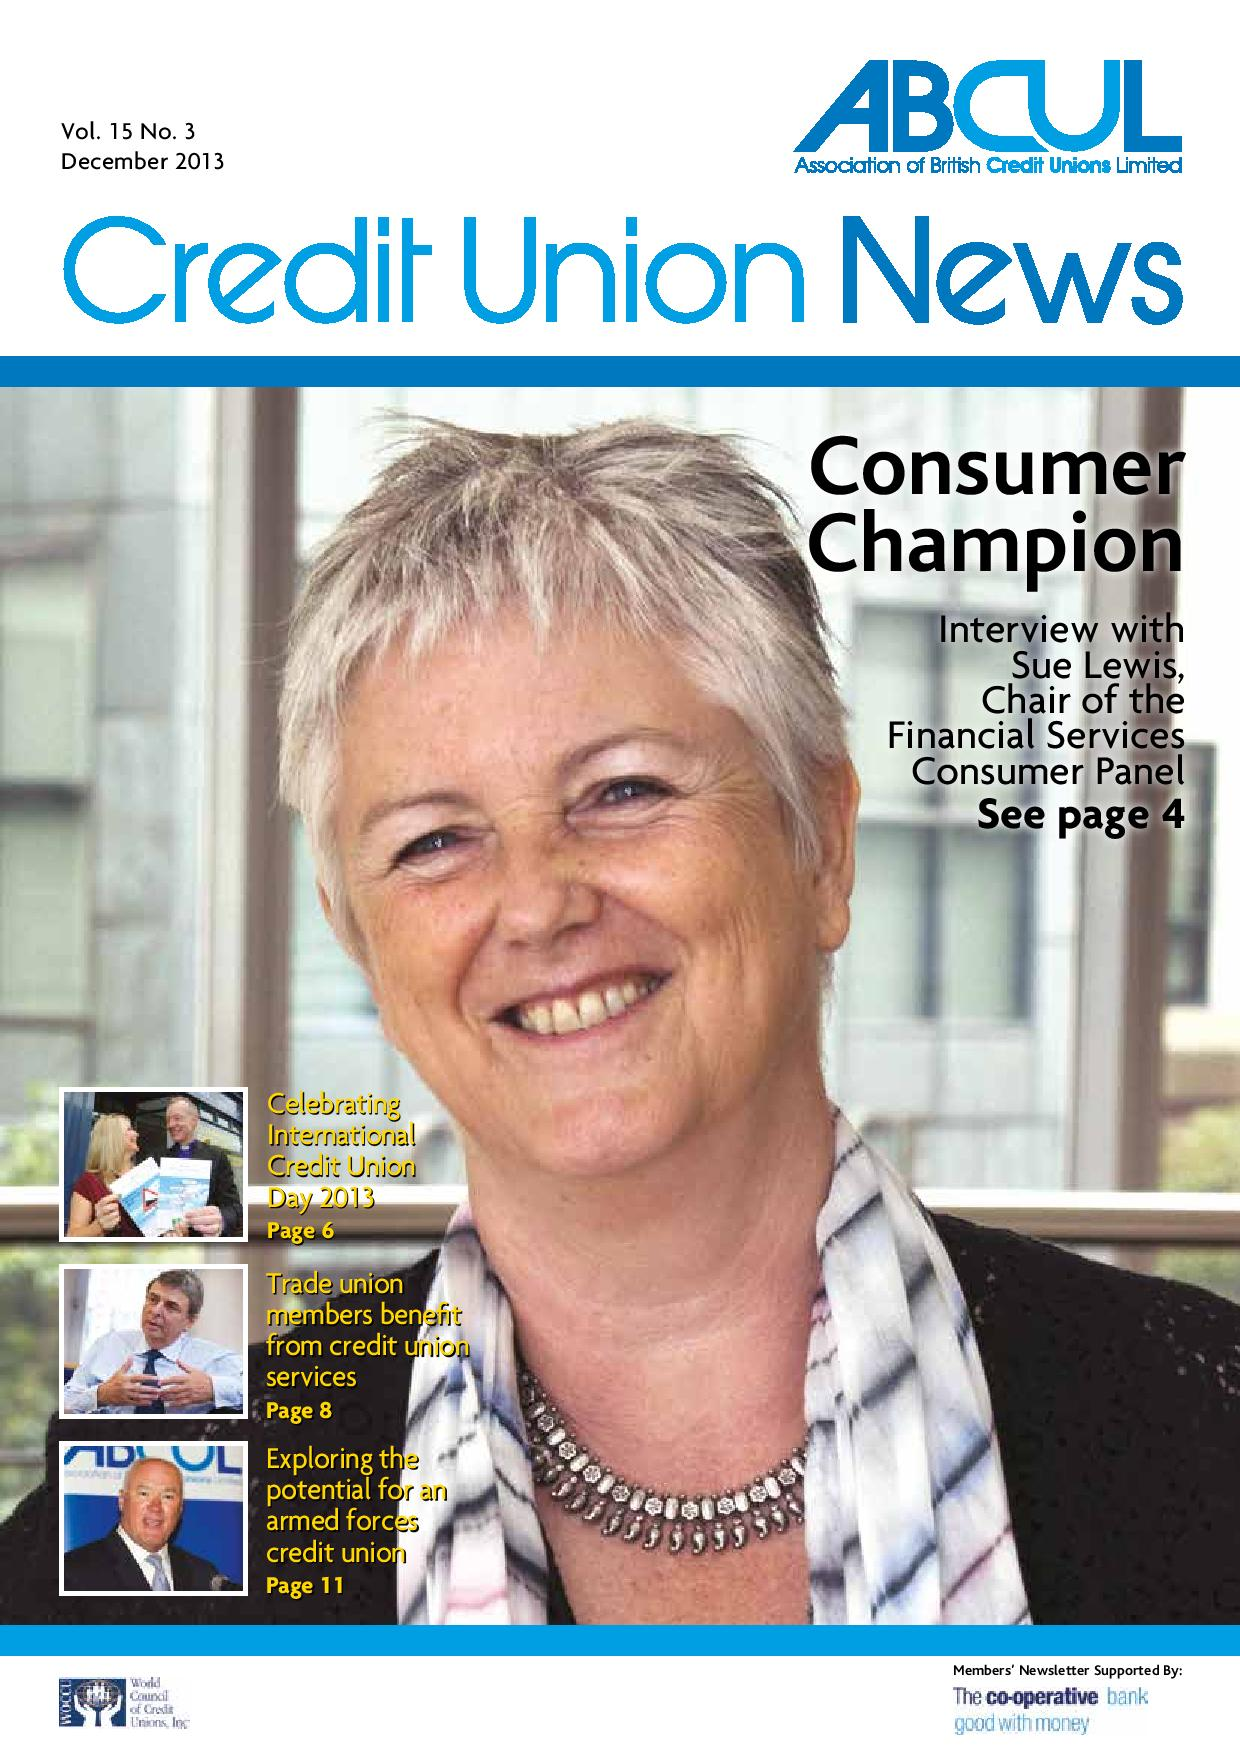 Credit Union News - December 2013